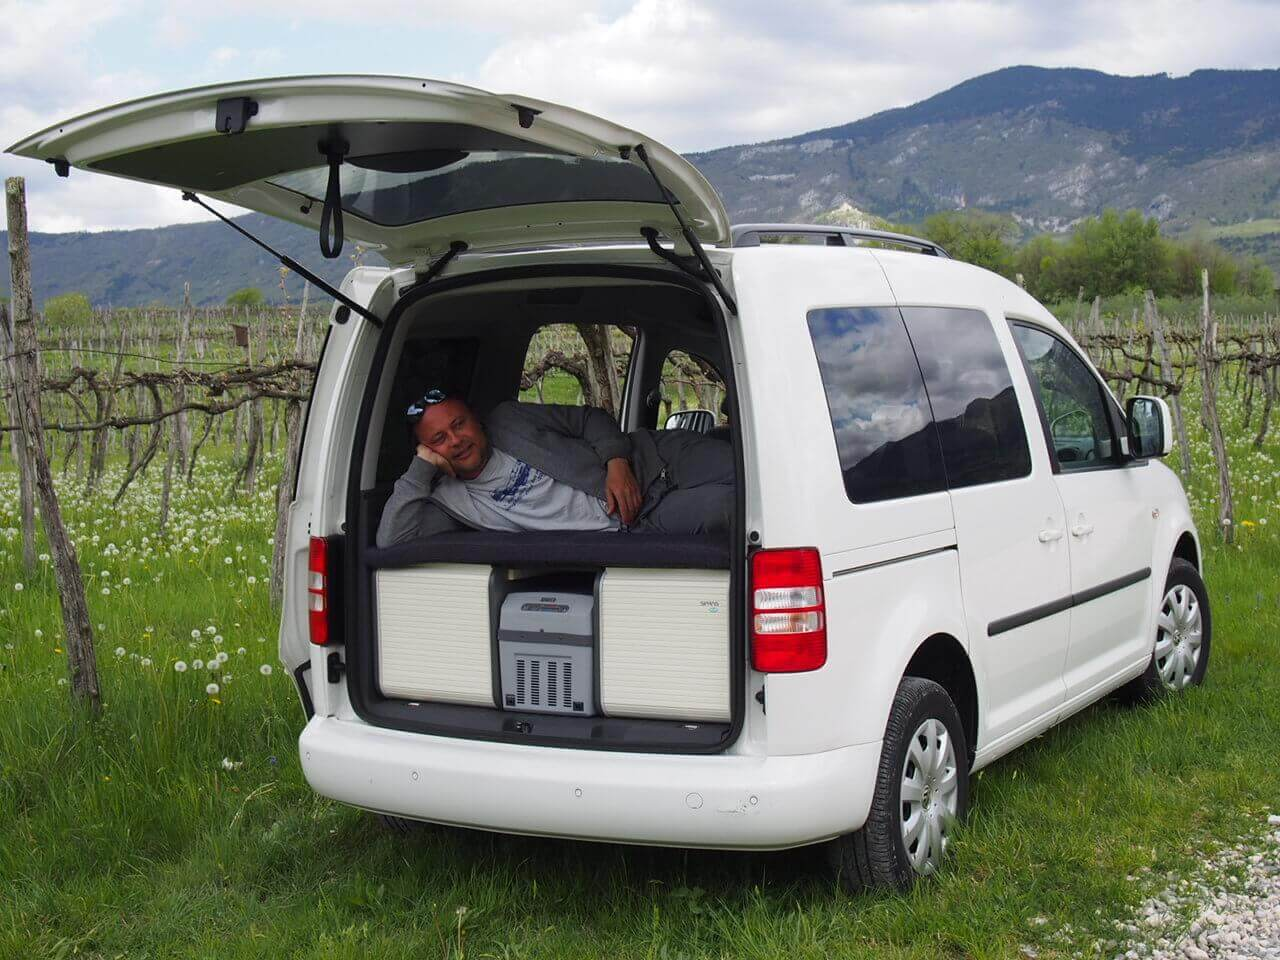 hight resolution of volkswagen caddy small camper van conversion with a neat camping box